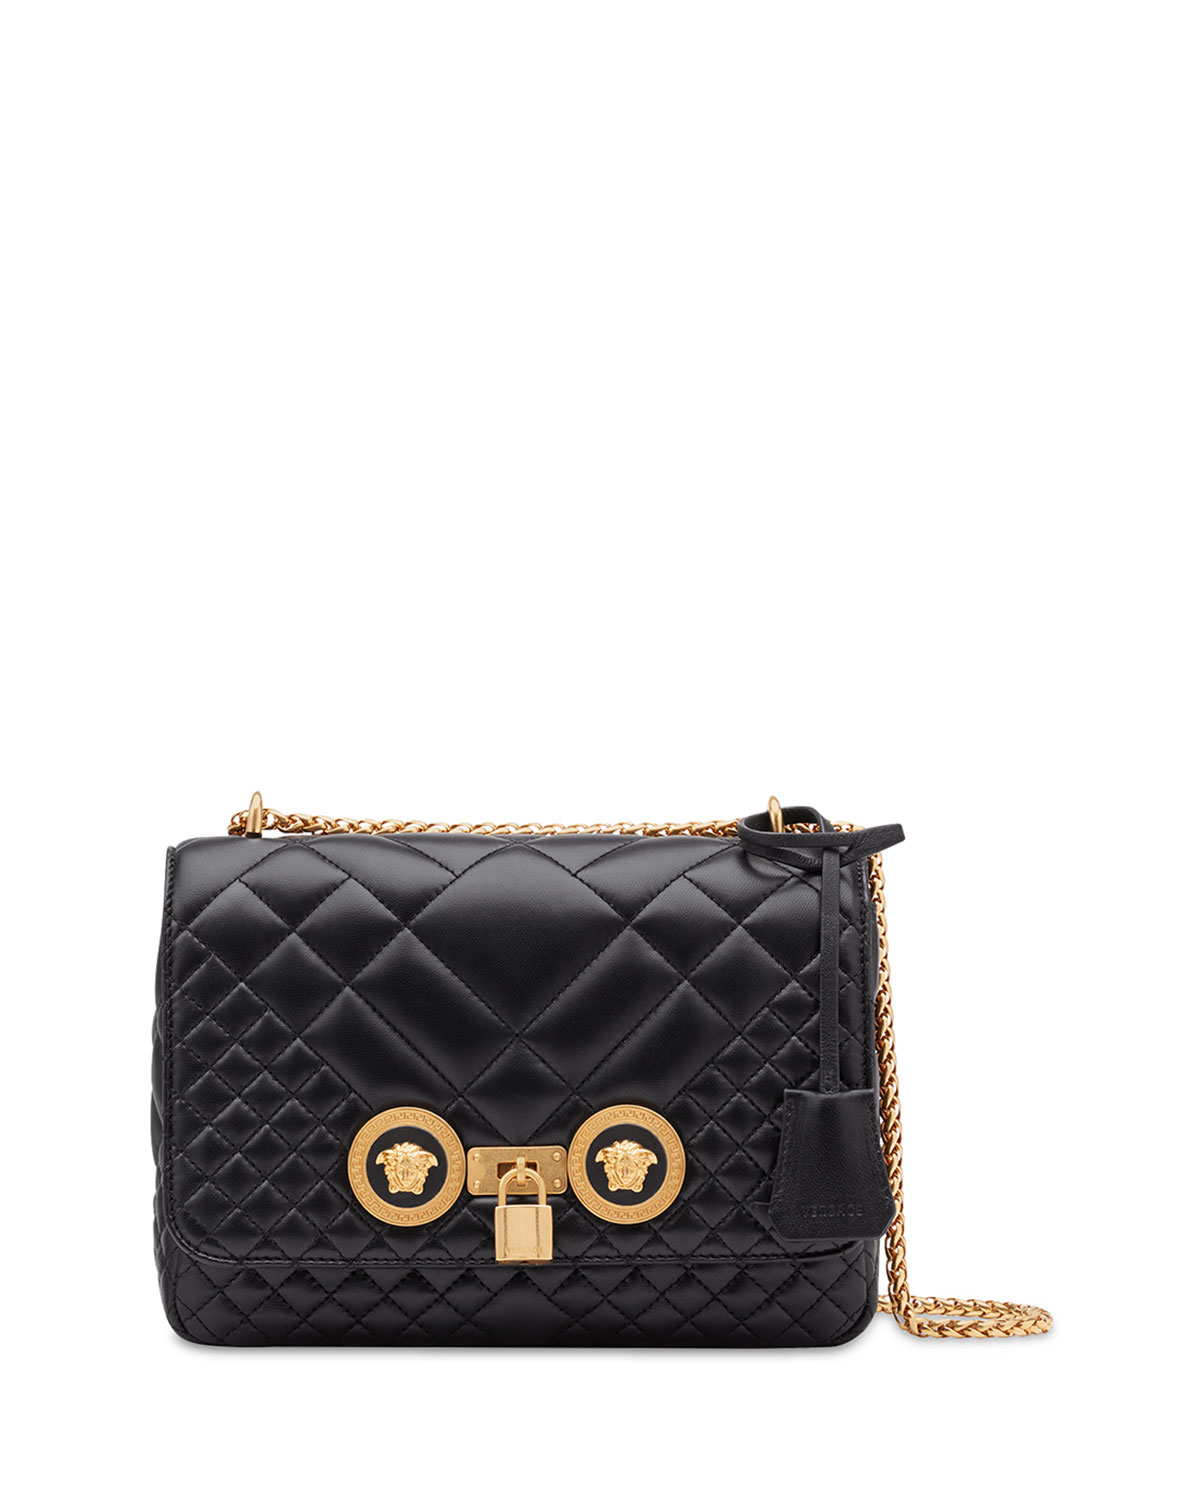 6805cca14b8c Versace Icon Medium Quilted Napa Shoulder Bag